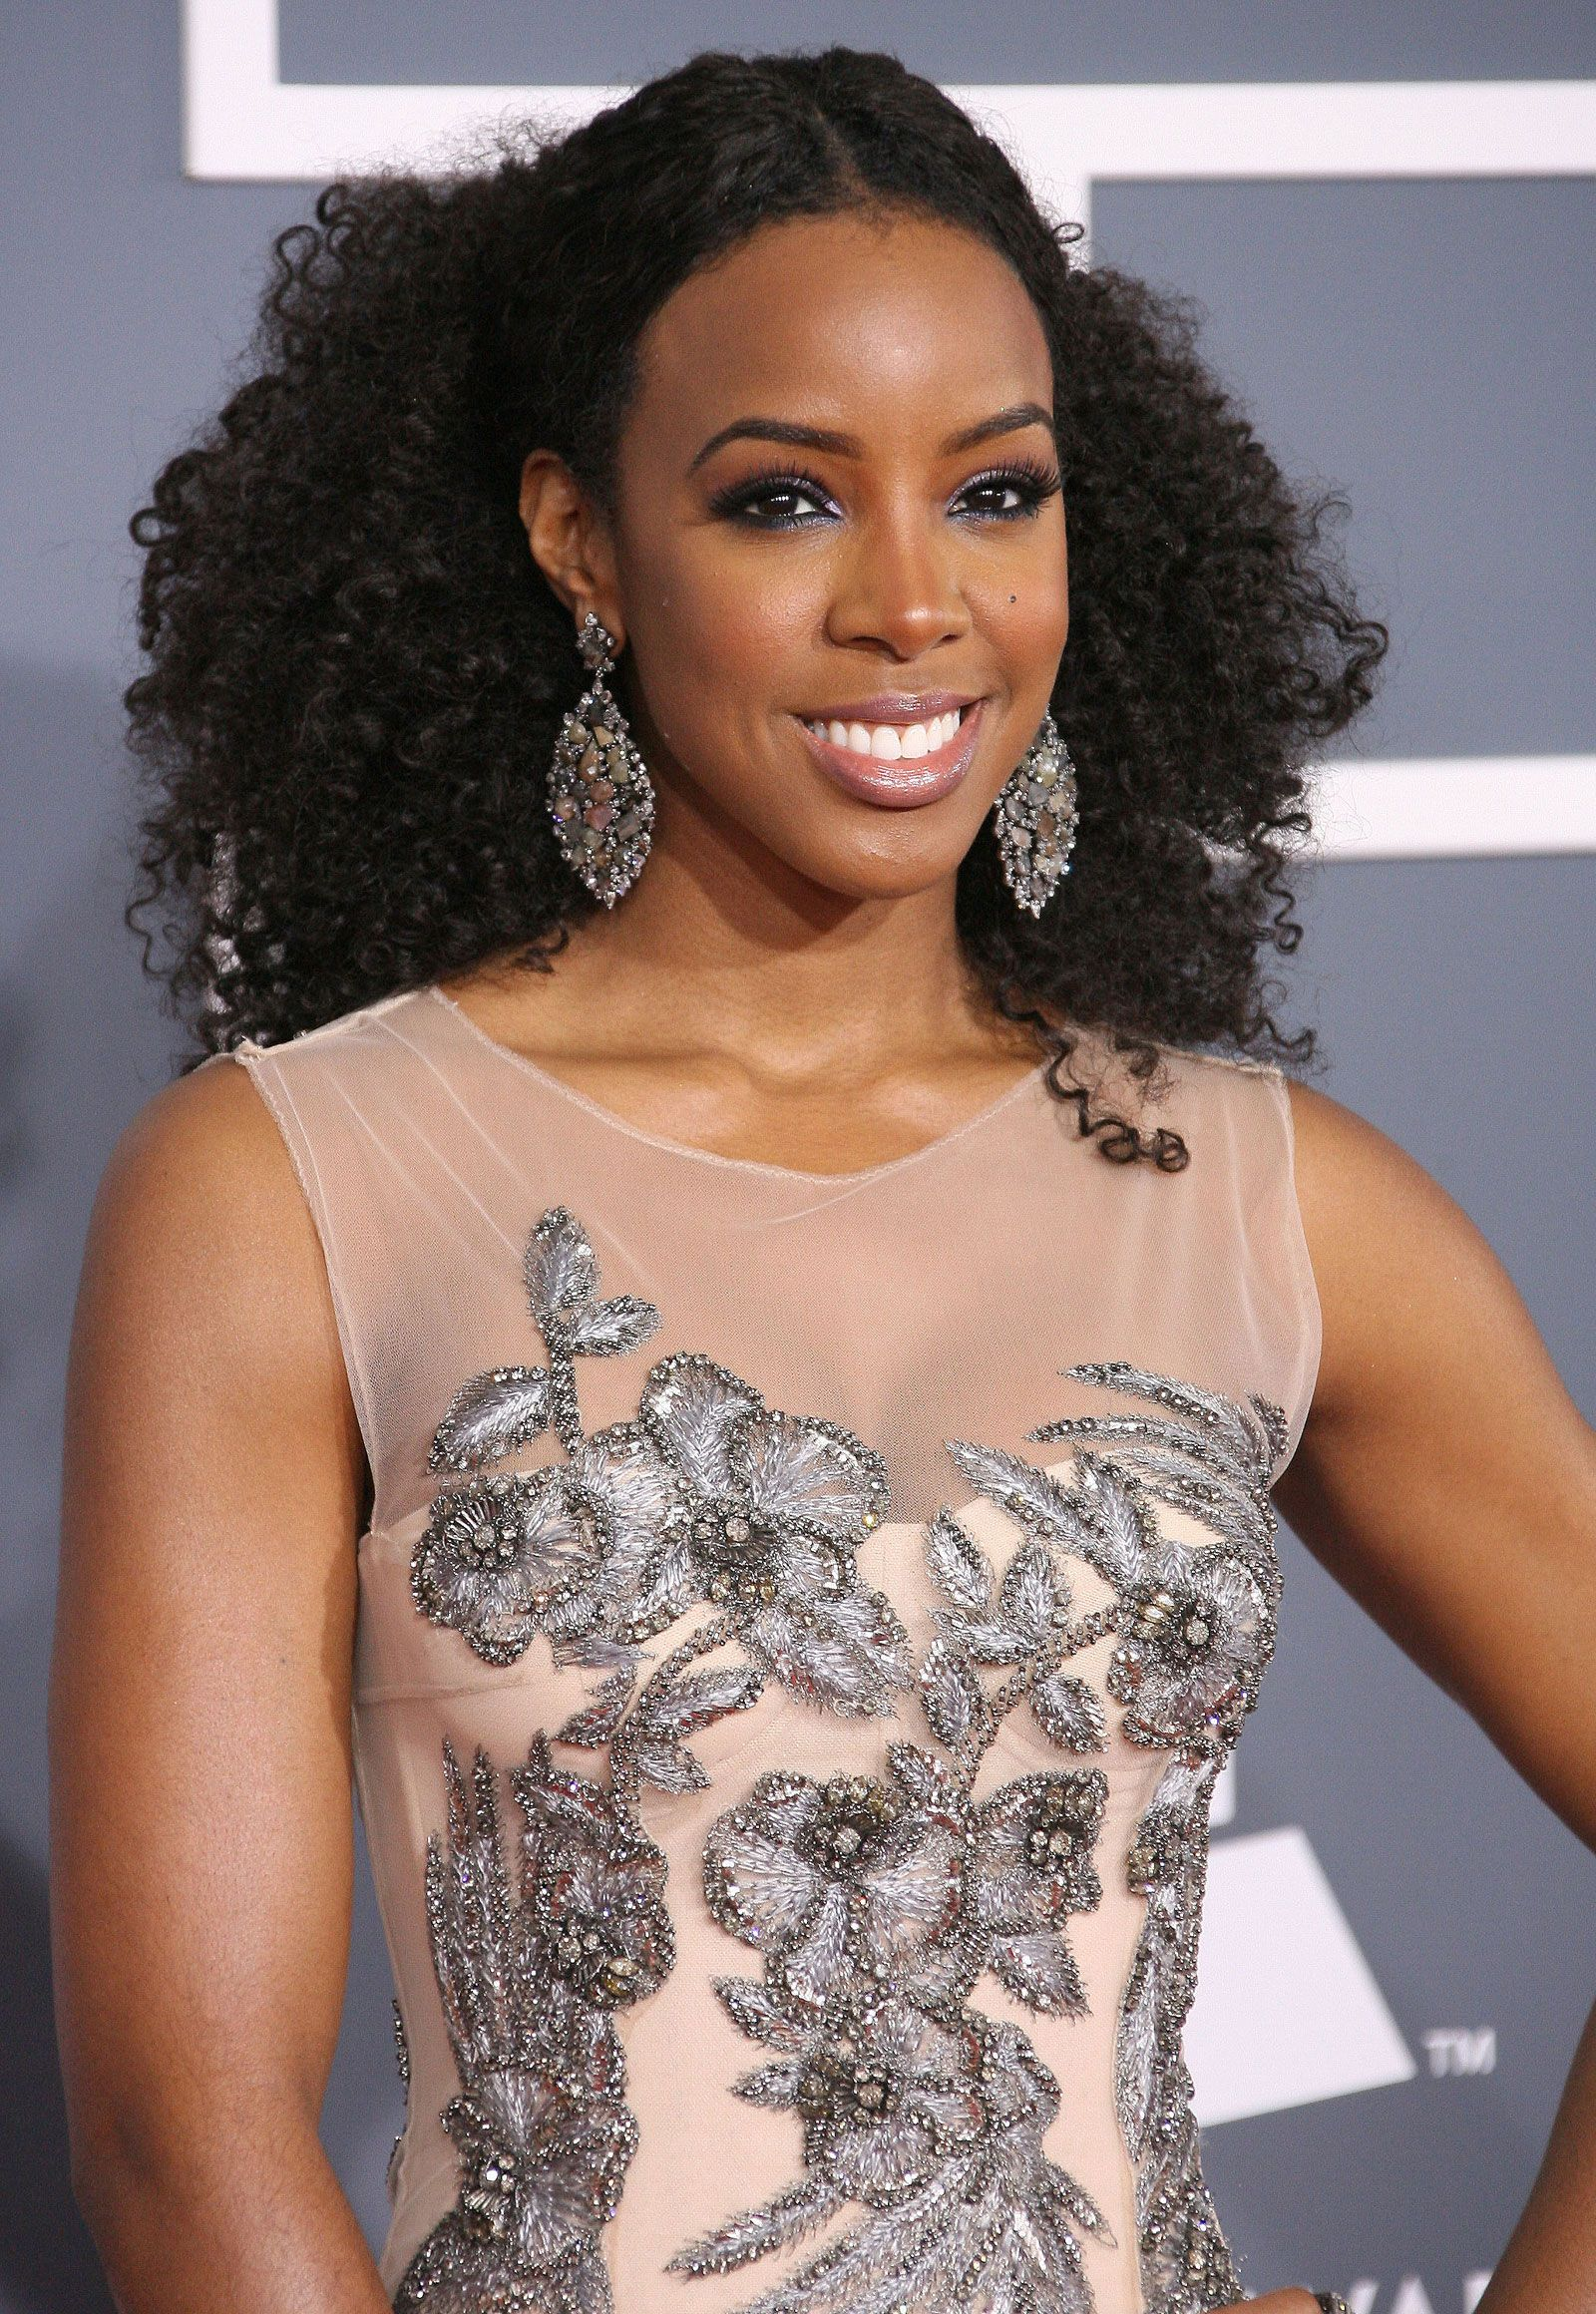 Kelly Rowland is very beautiful in the inside and outside